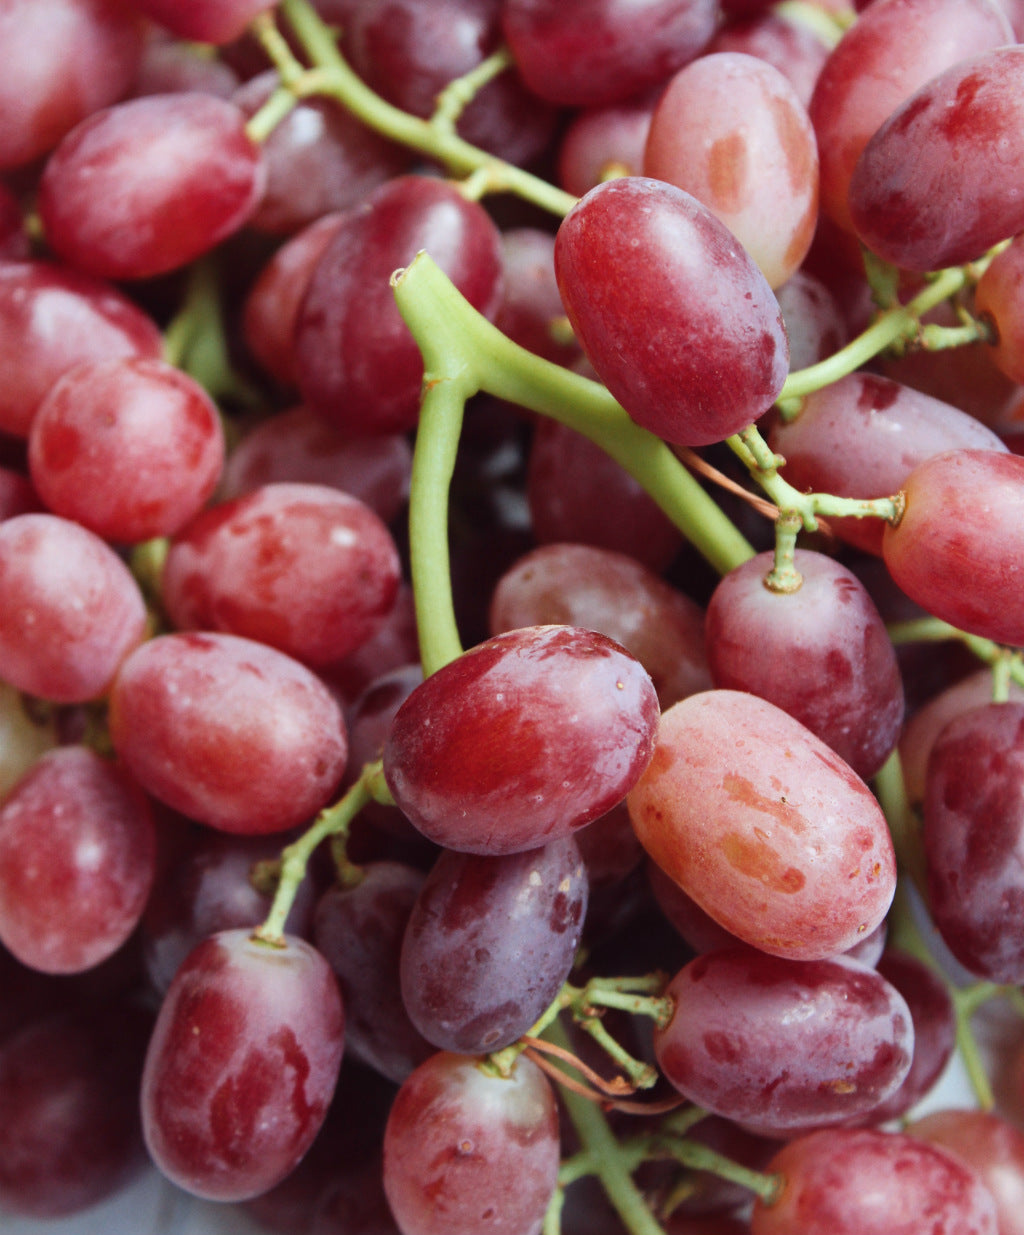 crimson seedless grapes pick of the week harris farm